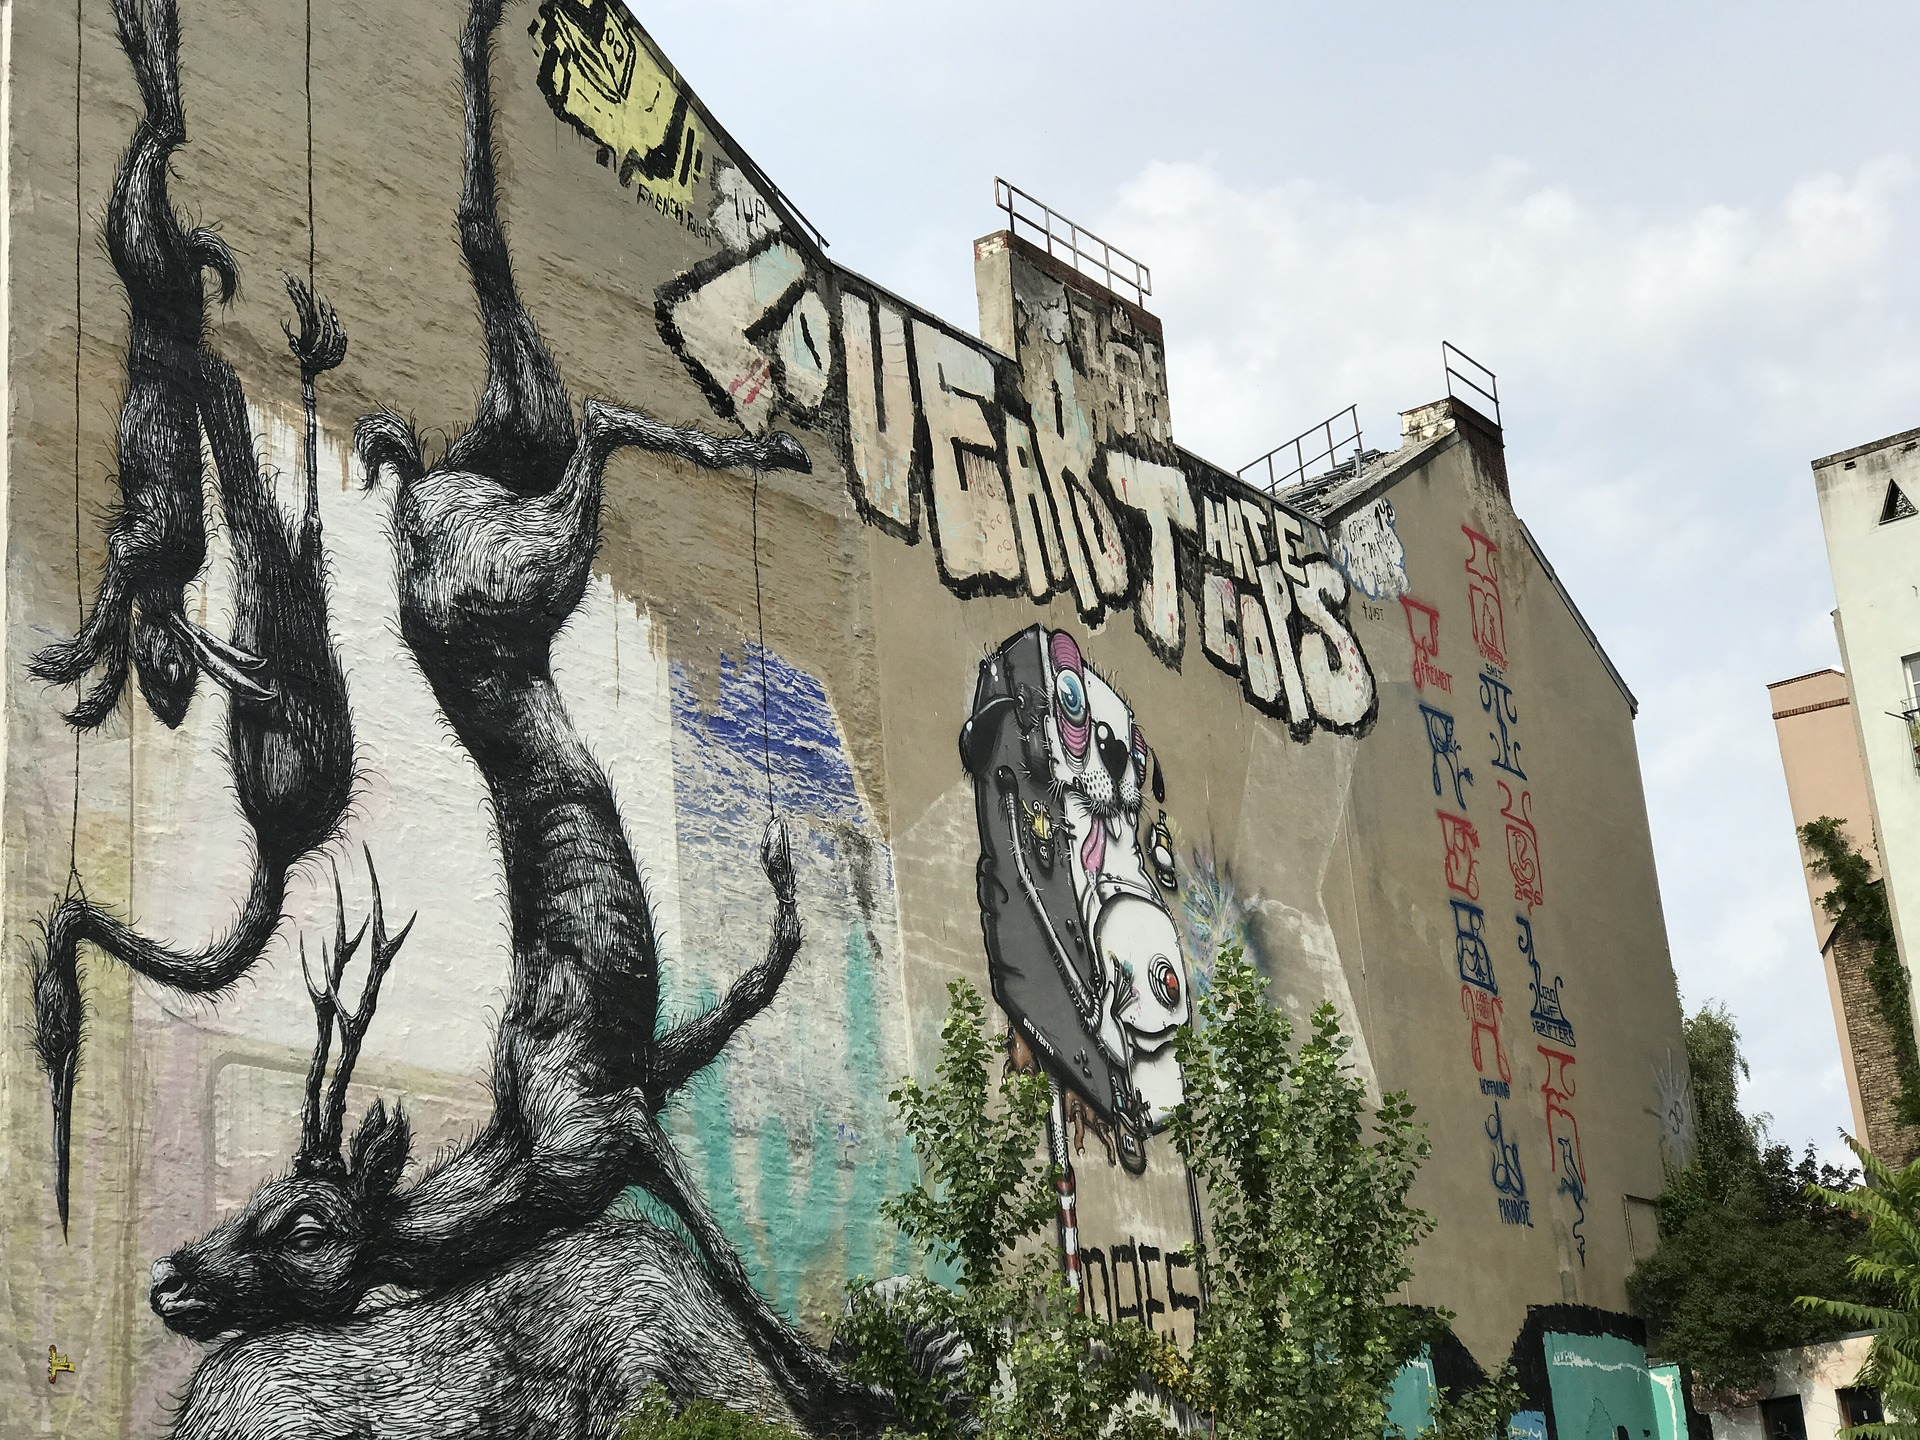 Urban Graffiti and Street Art: Another Side of Berlin